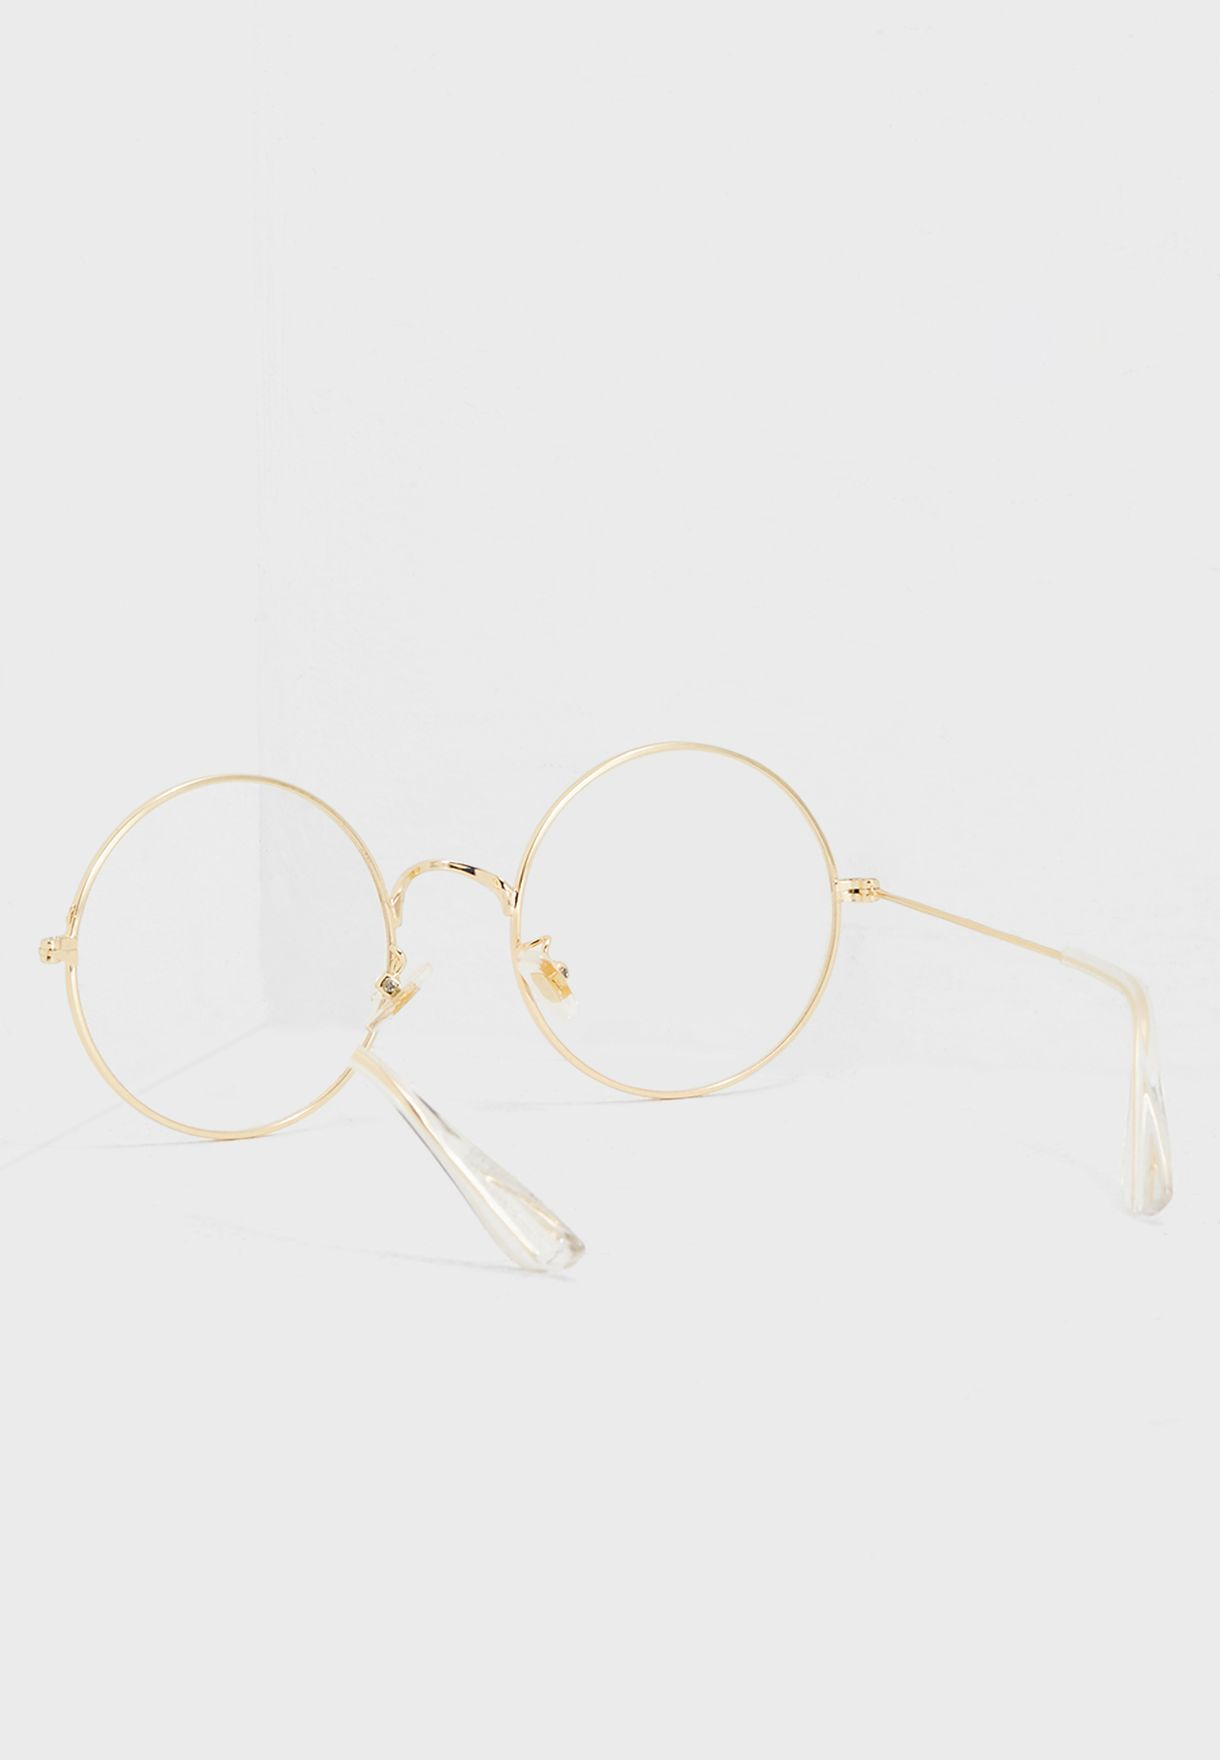 Round Clear Glasses